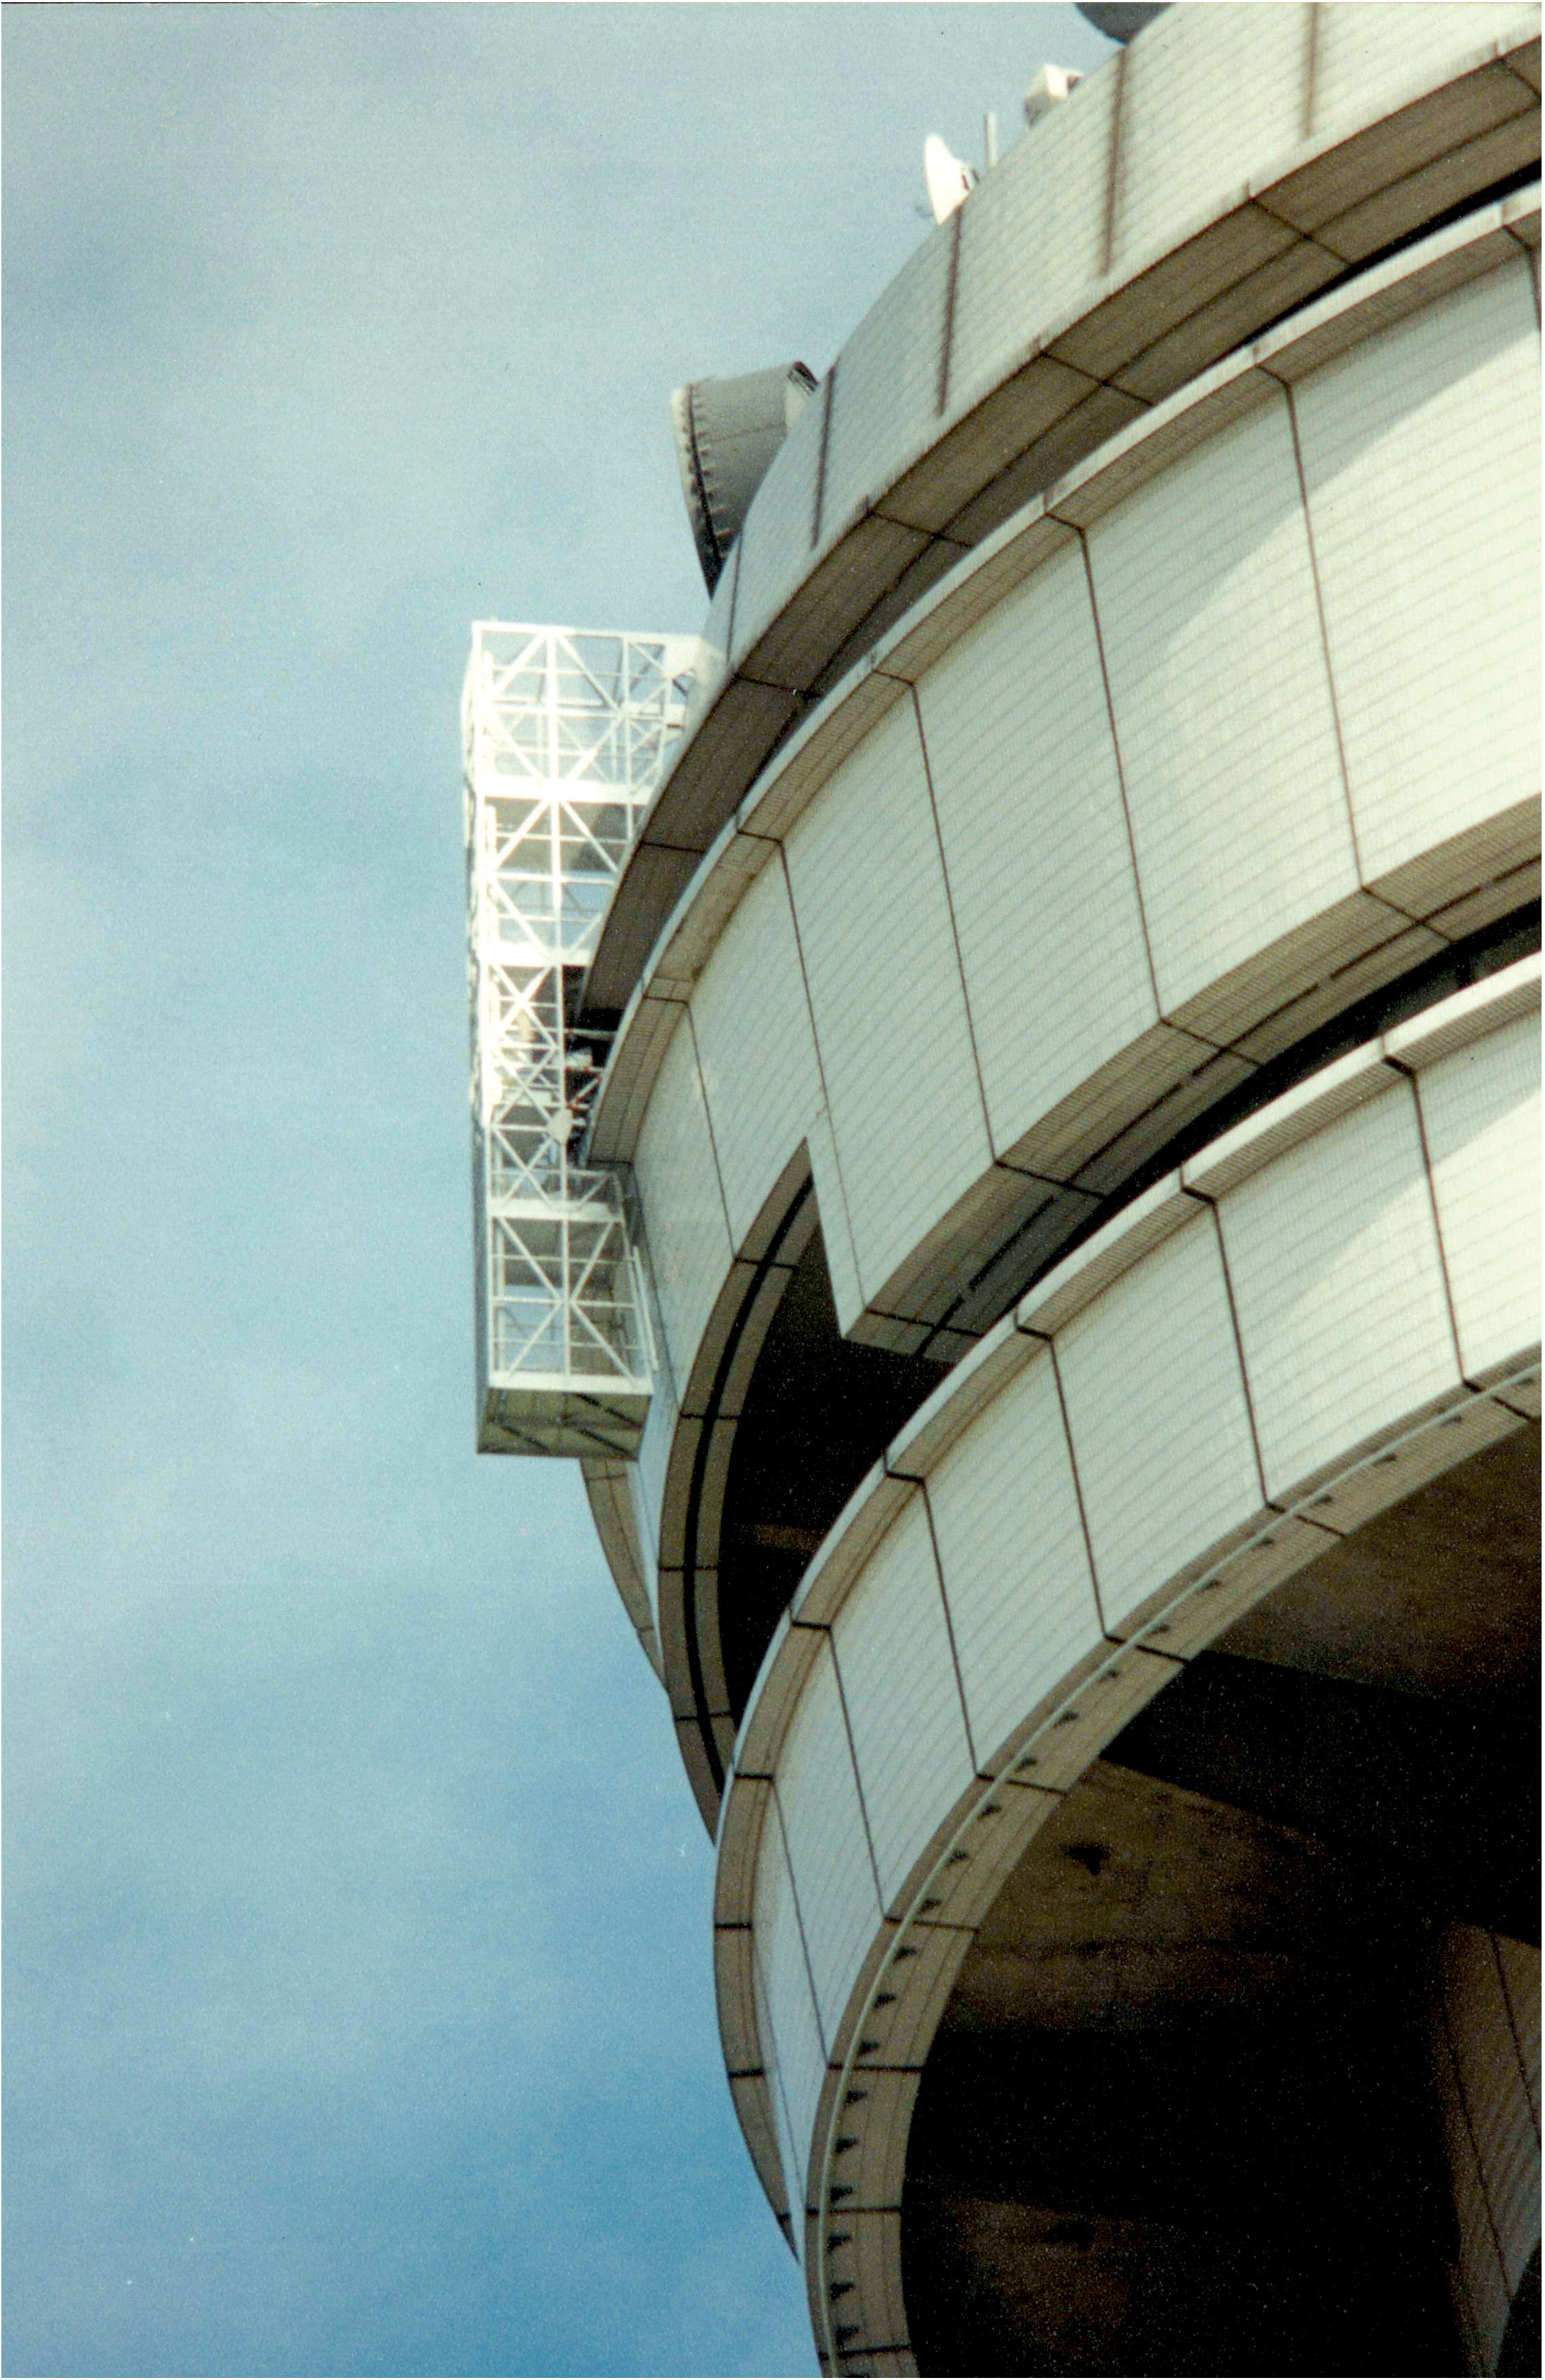 JOMY hanging ladder on an aircontrol tower